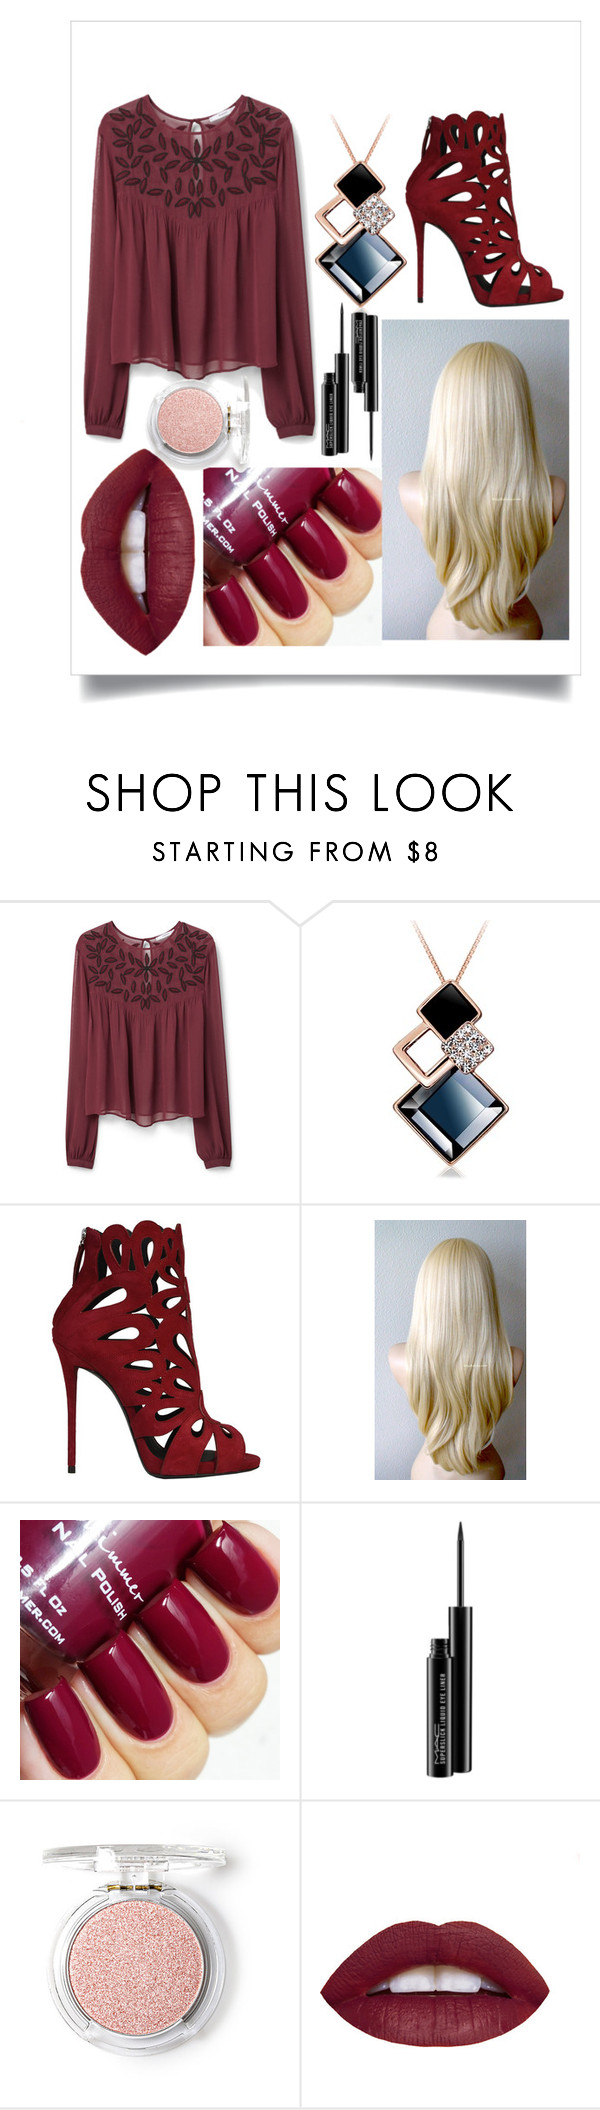 """Maroon 5 concert"" by abbyrali ❤ liked on Polyvore featuring beauty, MANGO, Giuseppe Zanotti, MAC Cosmetics and Love 21"